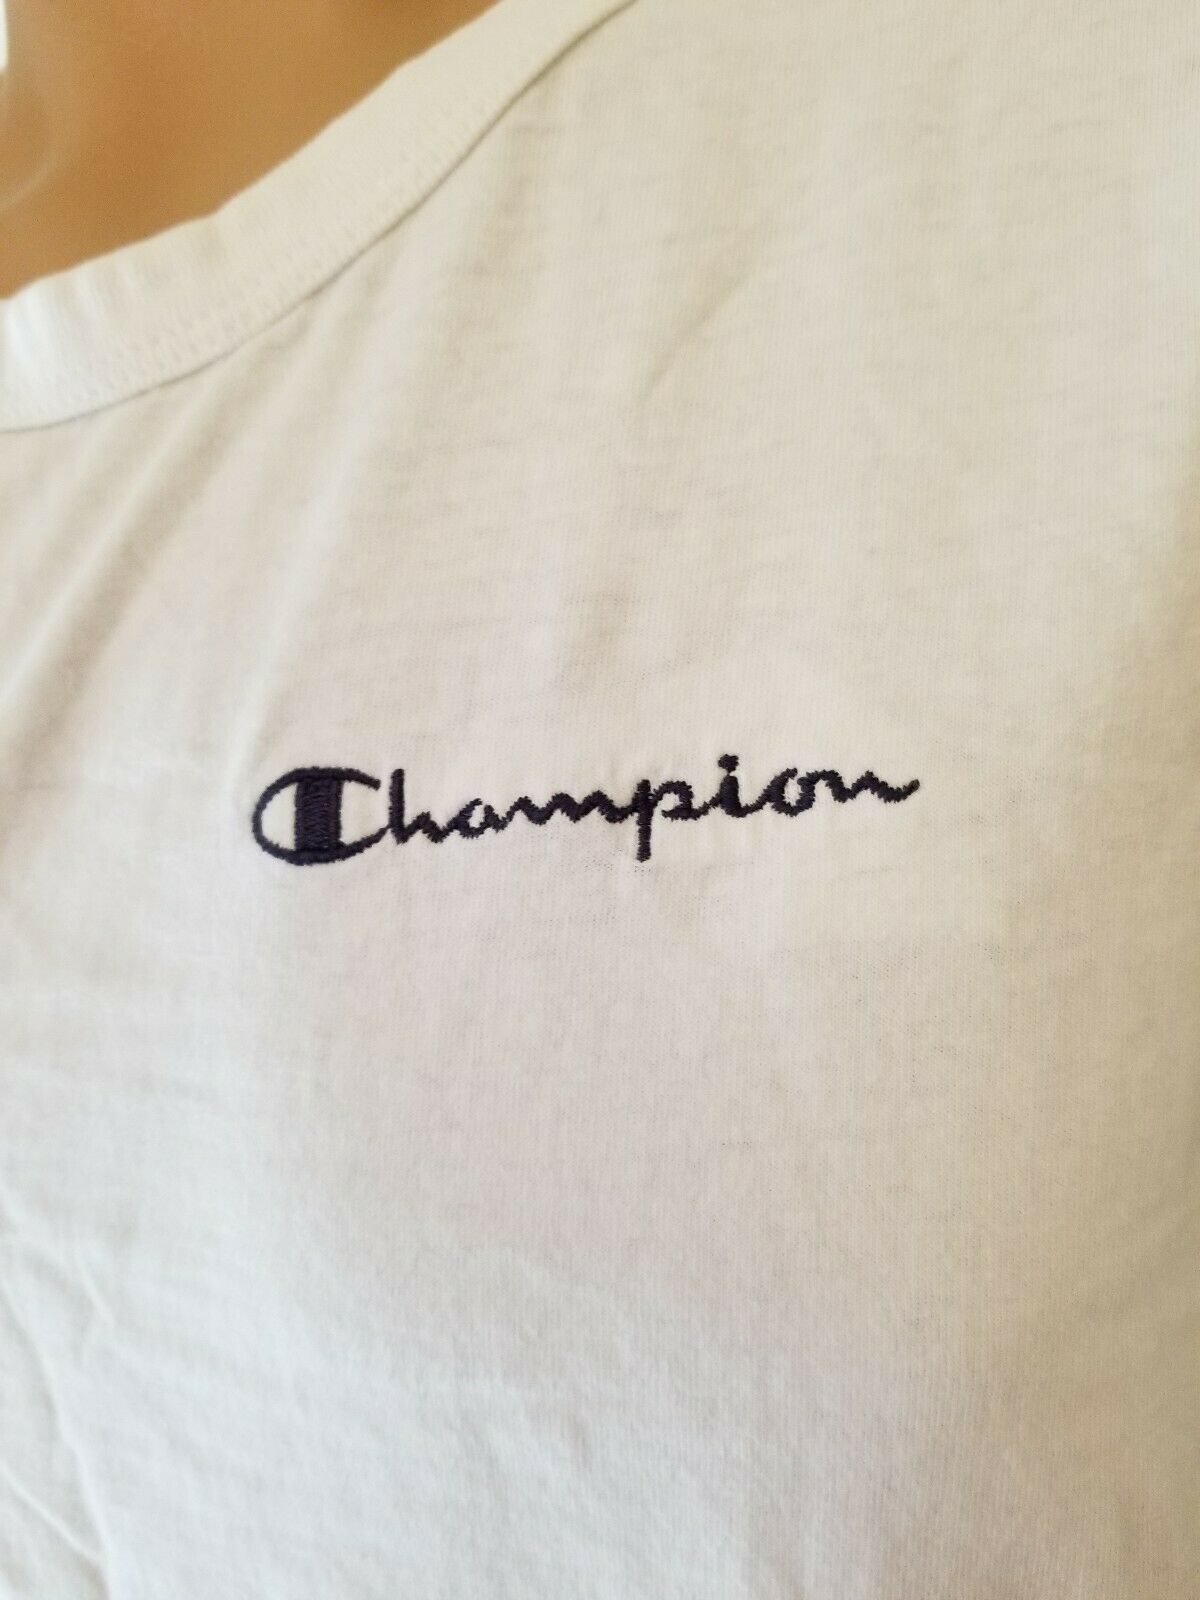 Vintage Champion Brand Shirt Sleeveless Stitched White Large Spellout 90s 1990s